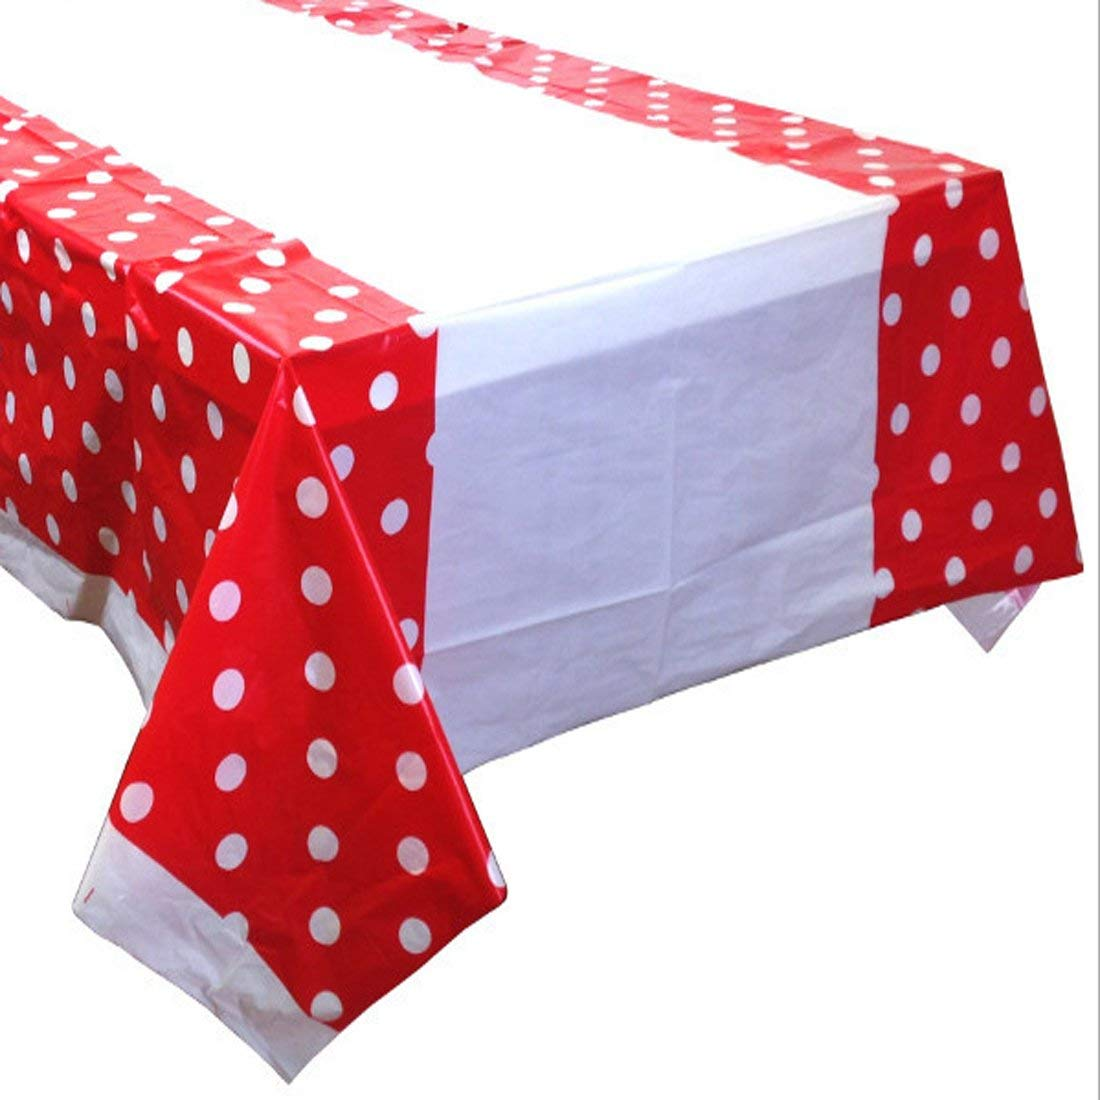 224 & Polka Dot Plastic Table Cover Disposable Party Tablecloth Covers Cloths 180cm x 110cm (red)